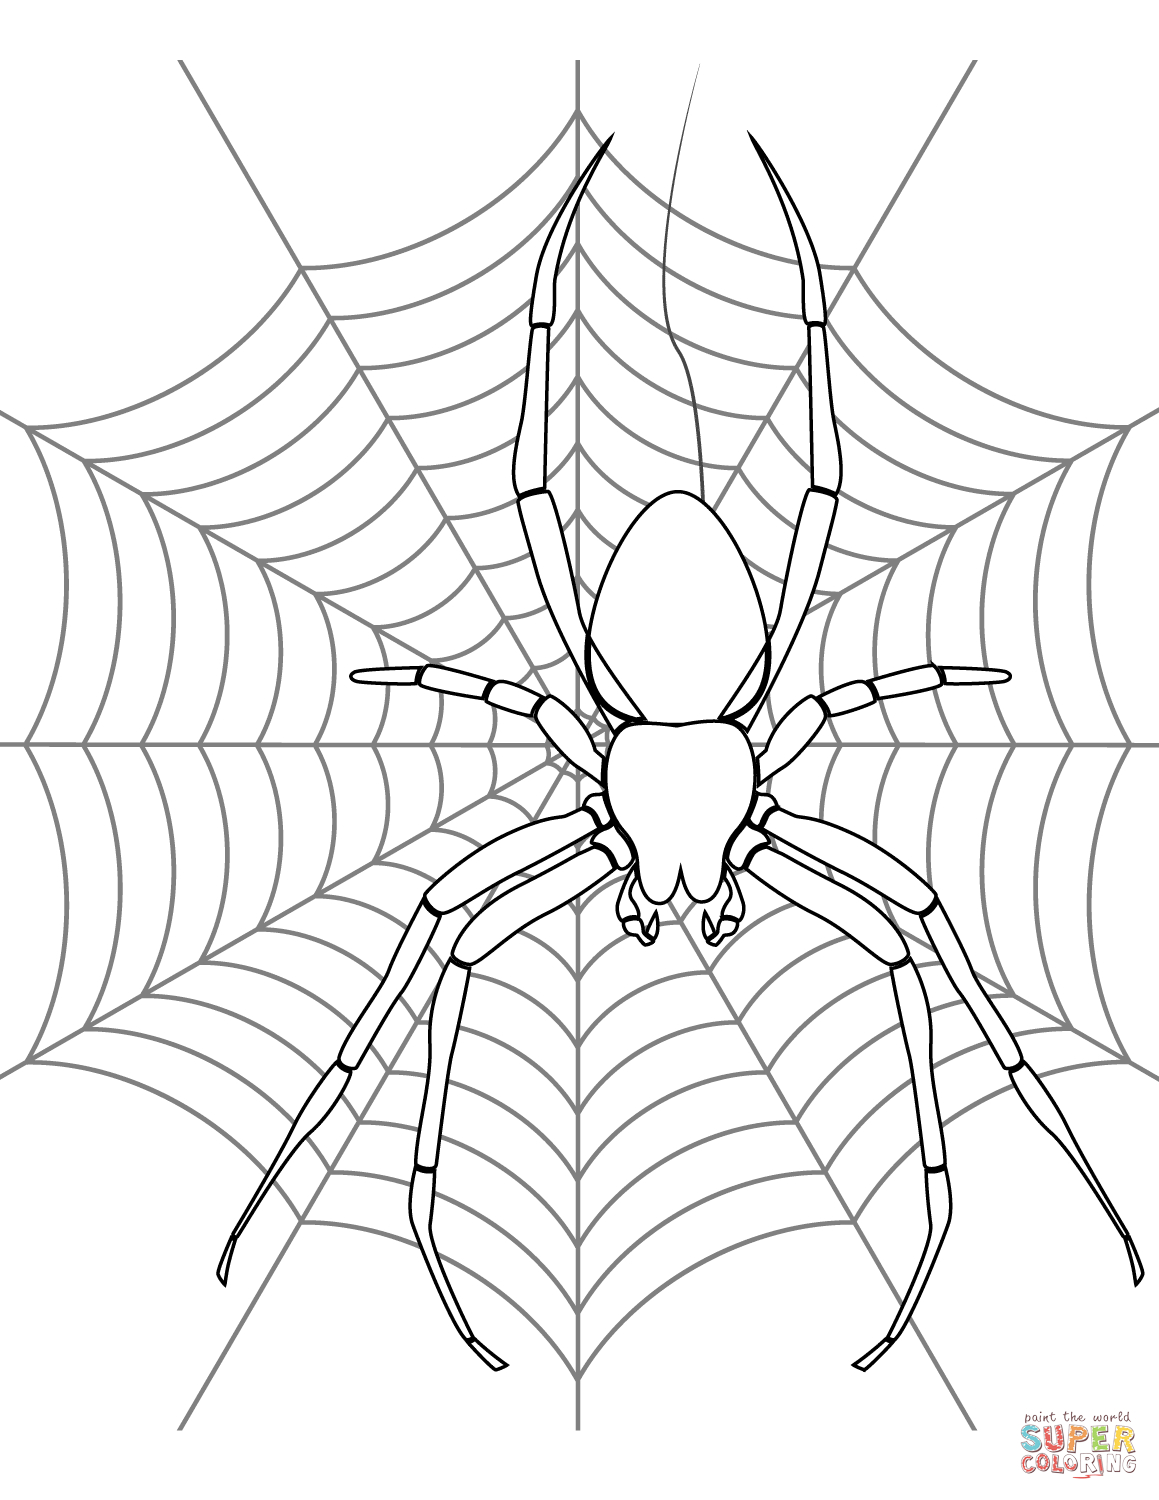 Spider On Its Web Coloring Page | Free Printable Coloring Pages - Free Printable Spider Web